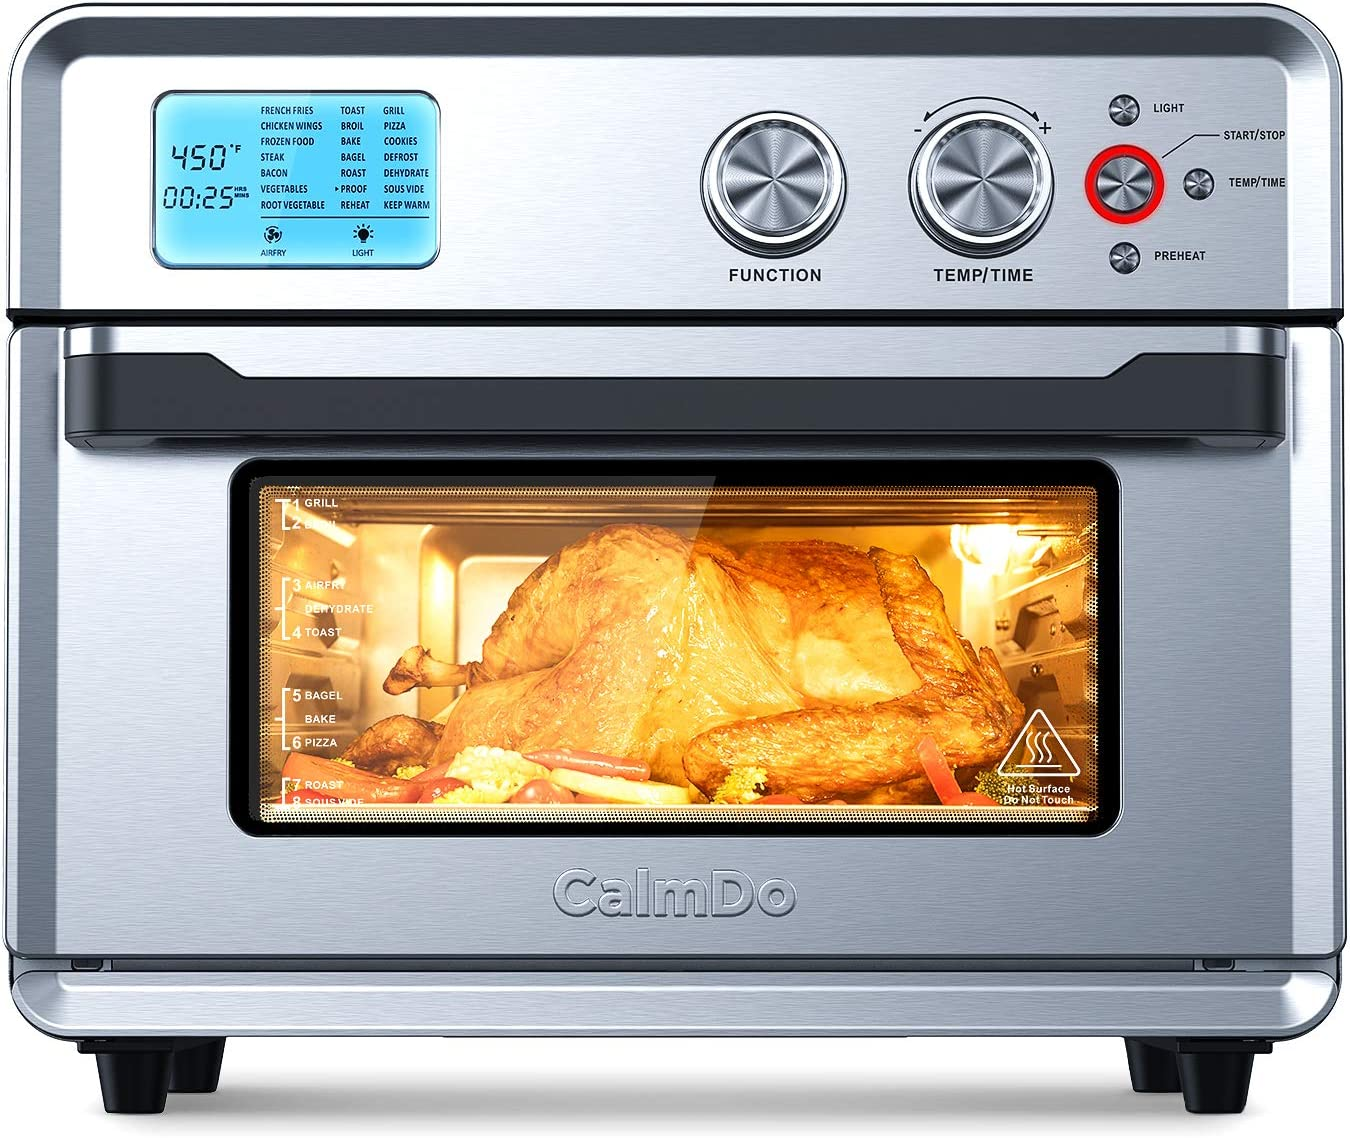 CalmDo Air Fryer Toaster Oven, 26.3 QT Convection Toaster Oven Airfryer with 21 Preset Cooking Functions for Bake, Pizza, Defrost, Sou Vide and Food Dehydrator, Oven Mitts & Recipes Included, Silver